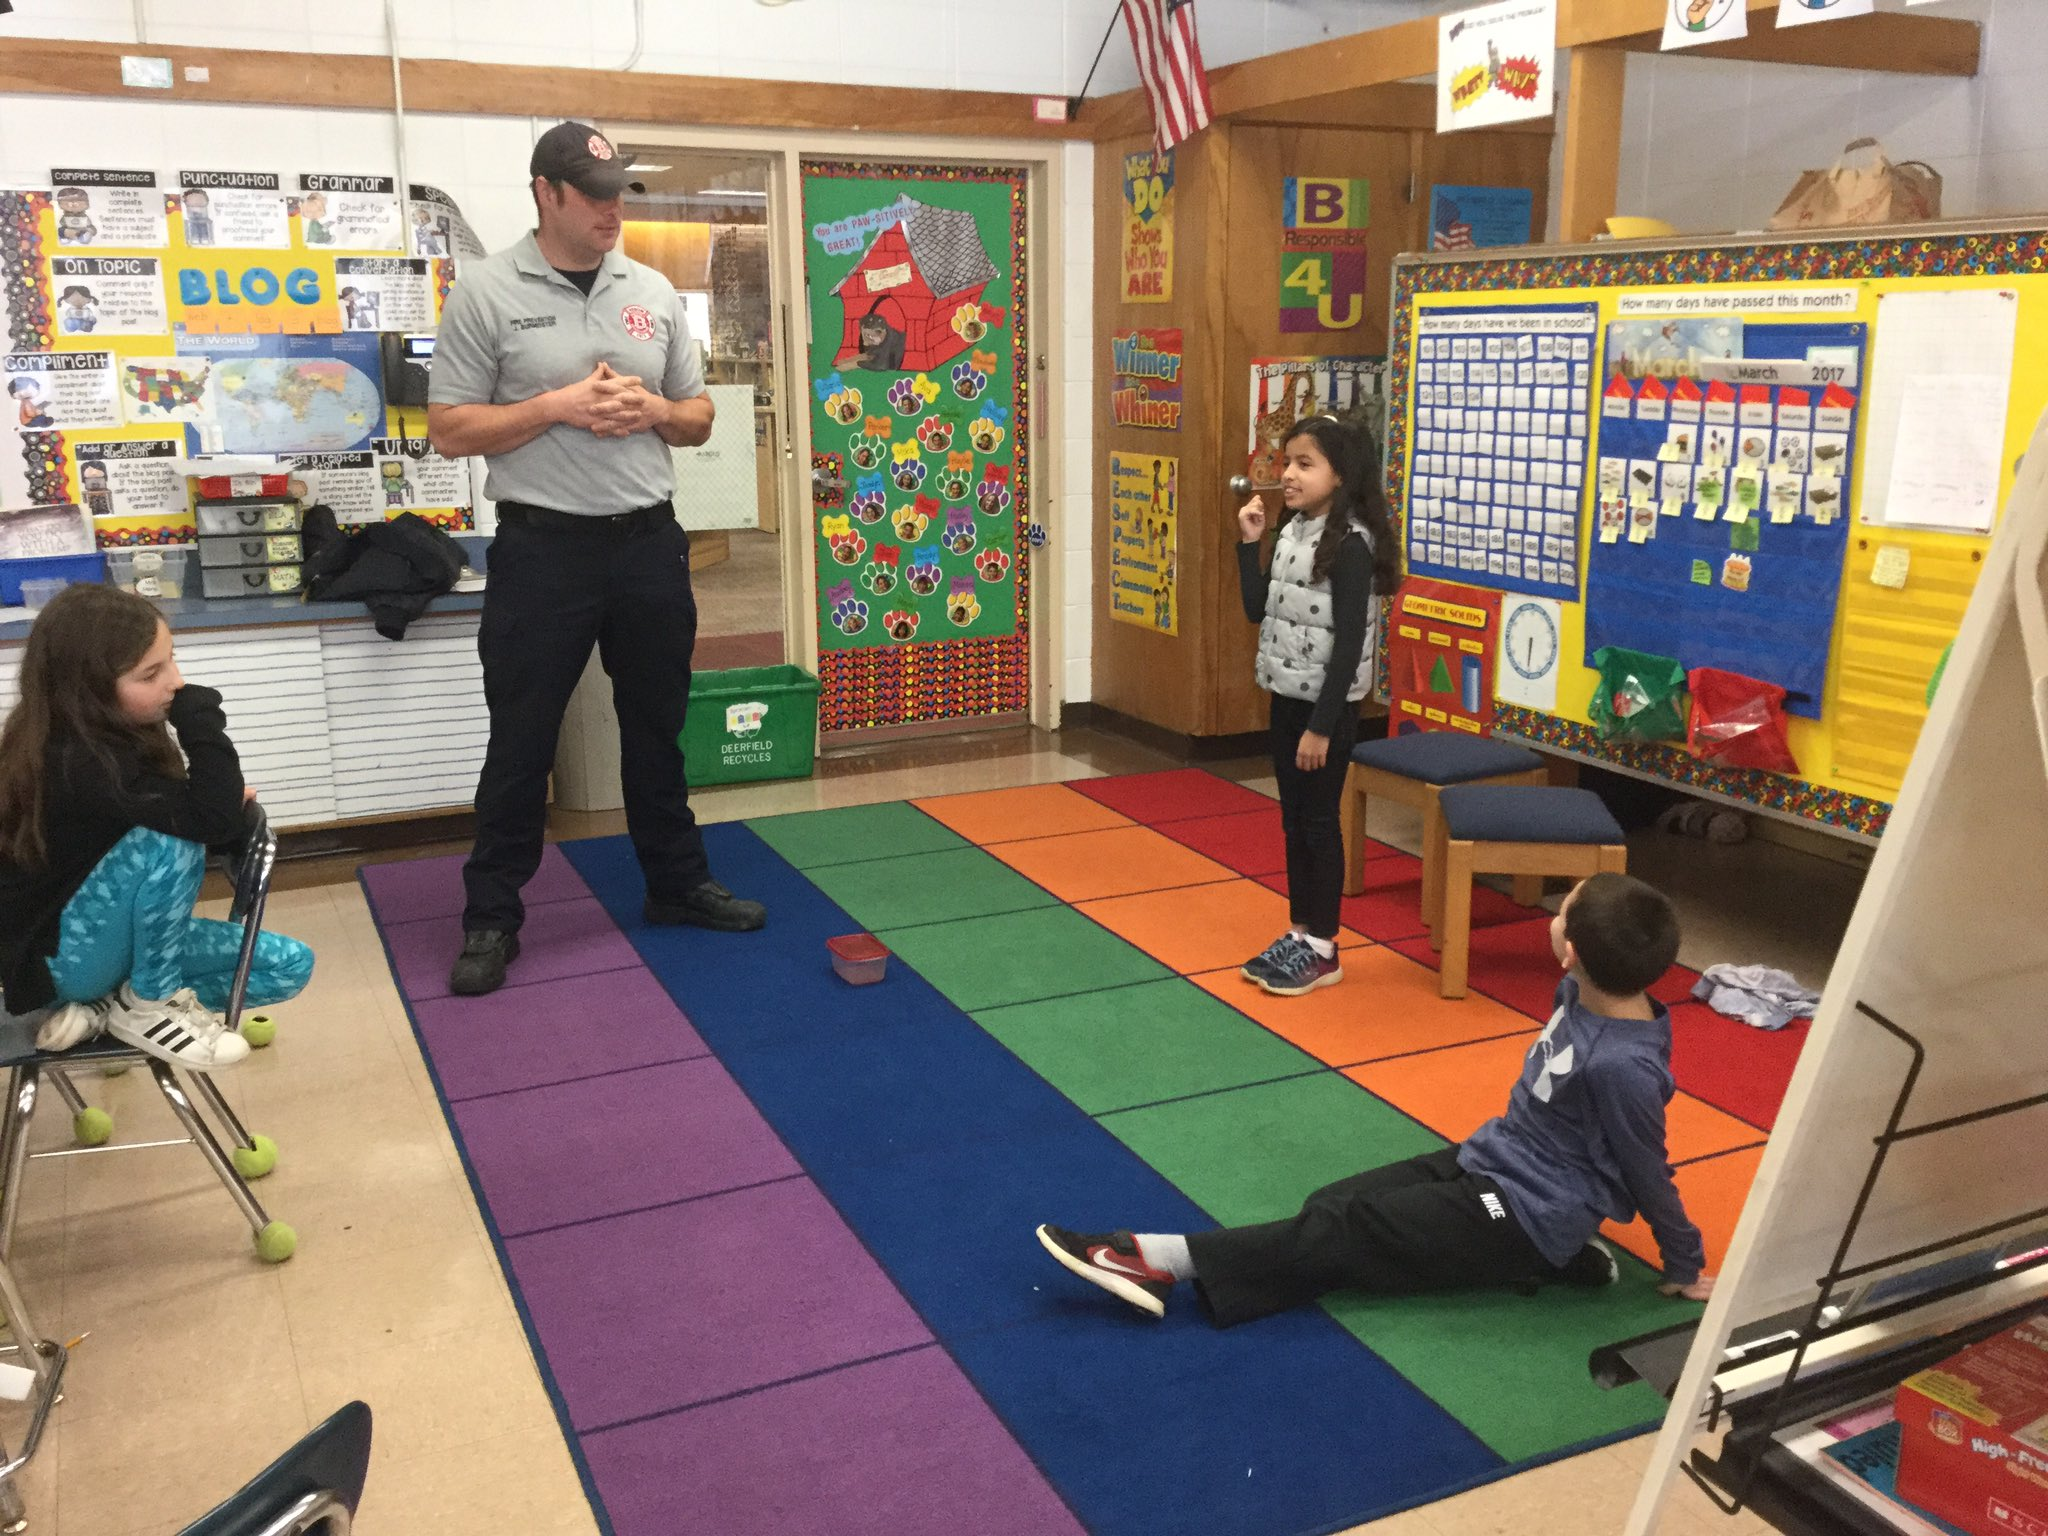 Learning emergency safety with Firefighter John in 2nd grade! #sp109 #engage109 https://t.co/zzexk9wPN0